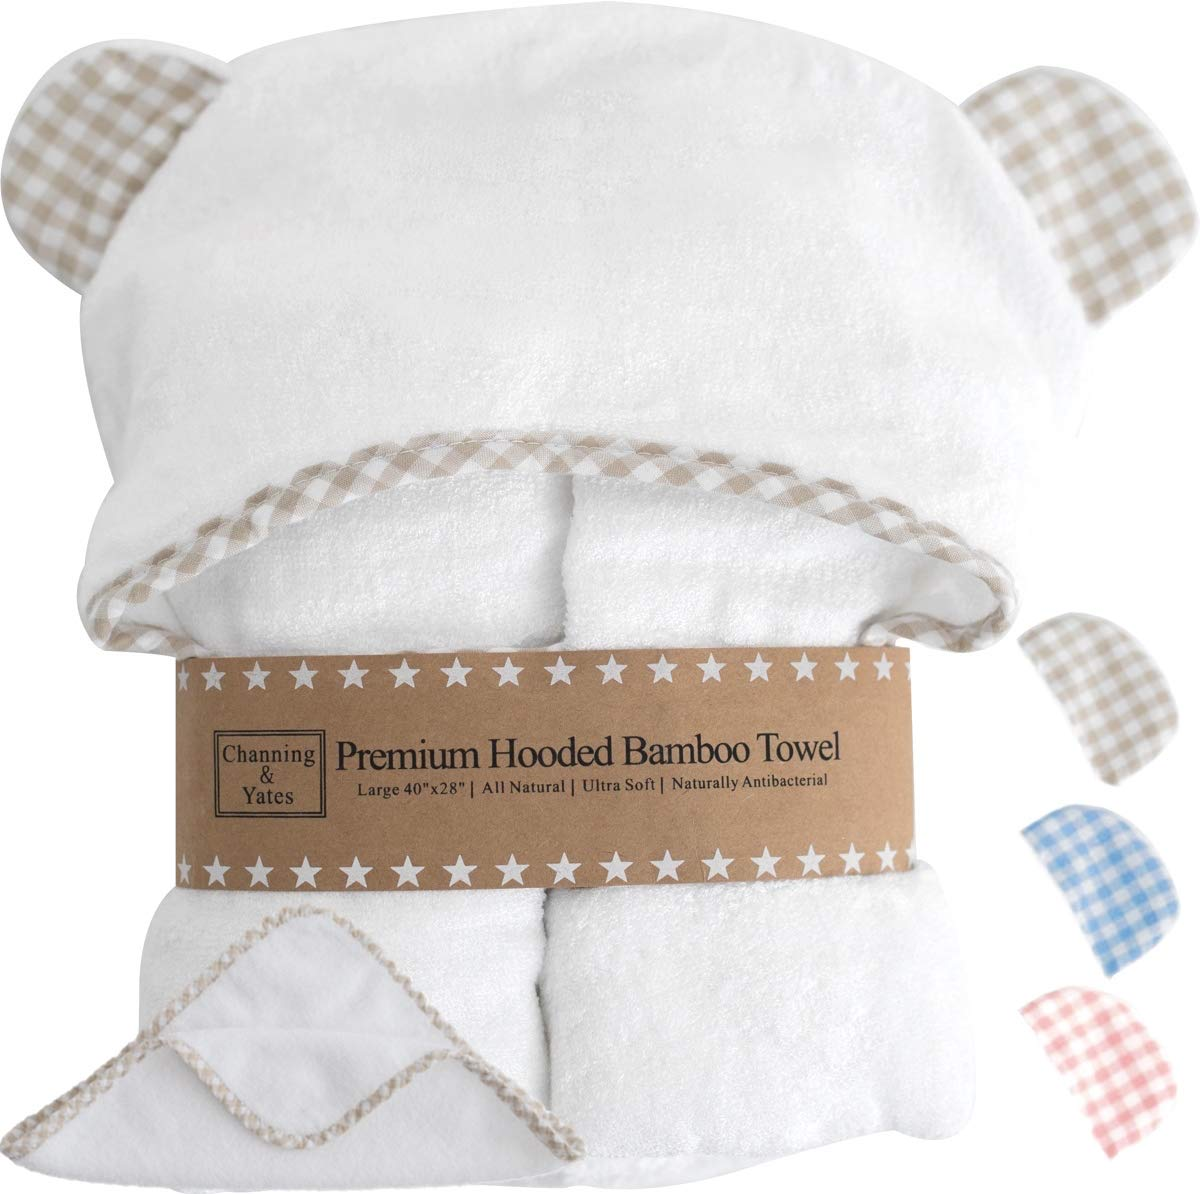 Premium Organic Baby Towel with Hood and Washcloth Gift Set - Boutique Baby Towels and Washcloths - Bamboo Hooded Towels for Baby - Hypoallergenic Large Toddler Towels for Boys or Girls (Beige/White)